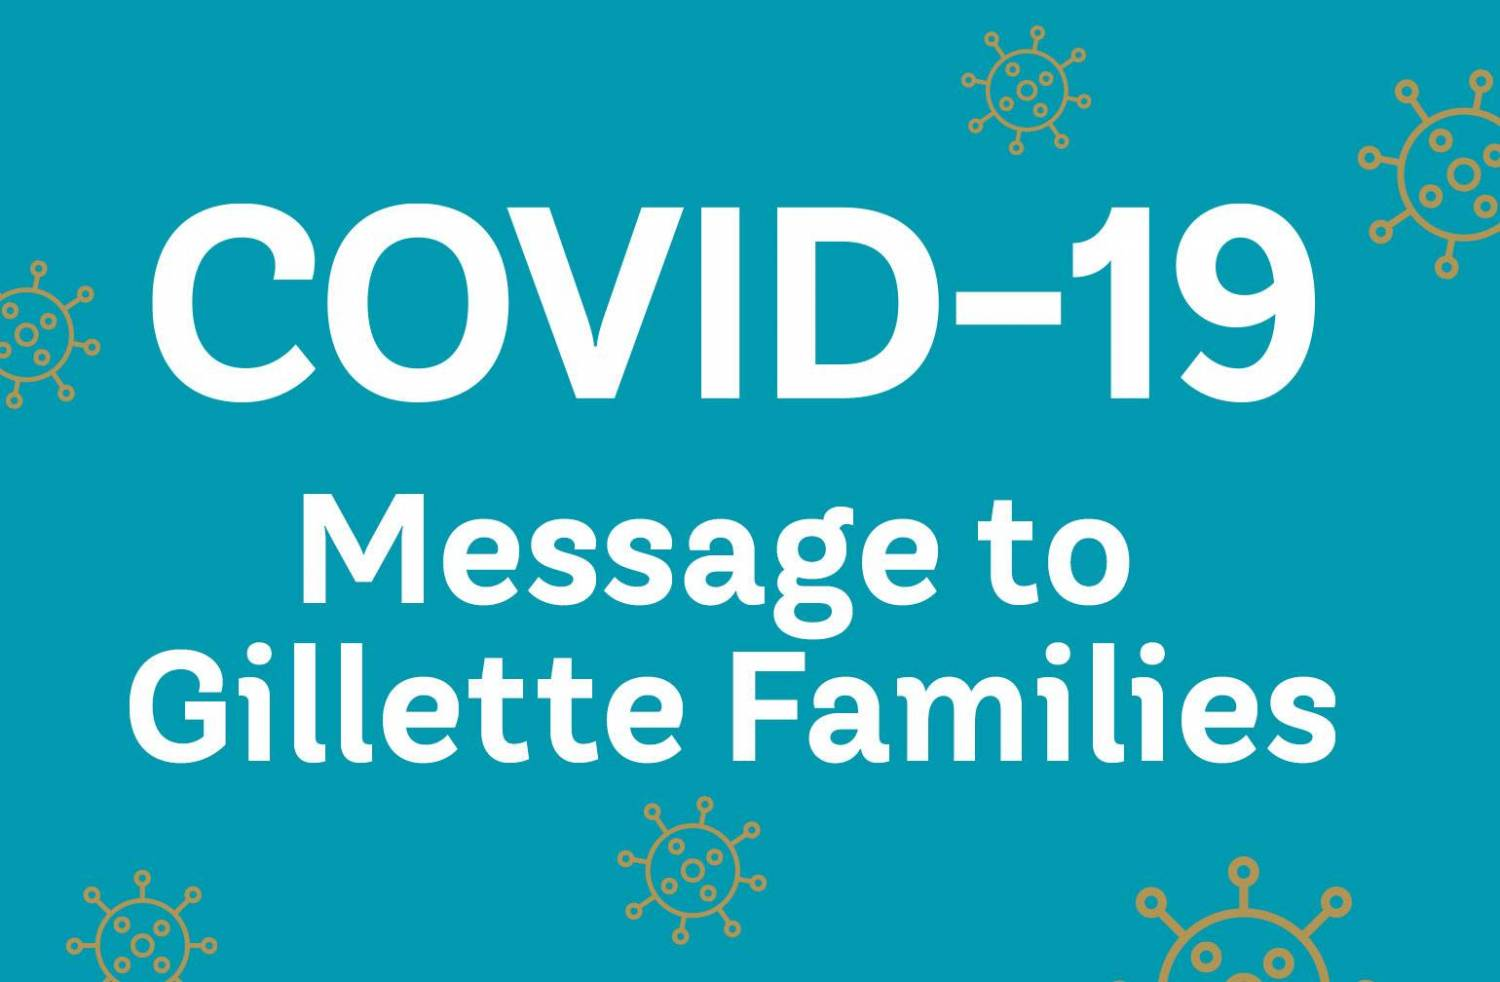 COVID-19 Gillette Message to Families Graphic